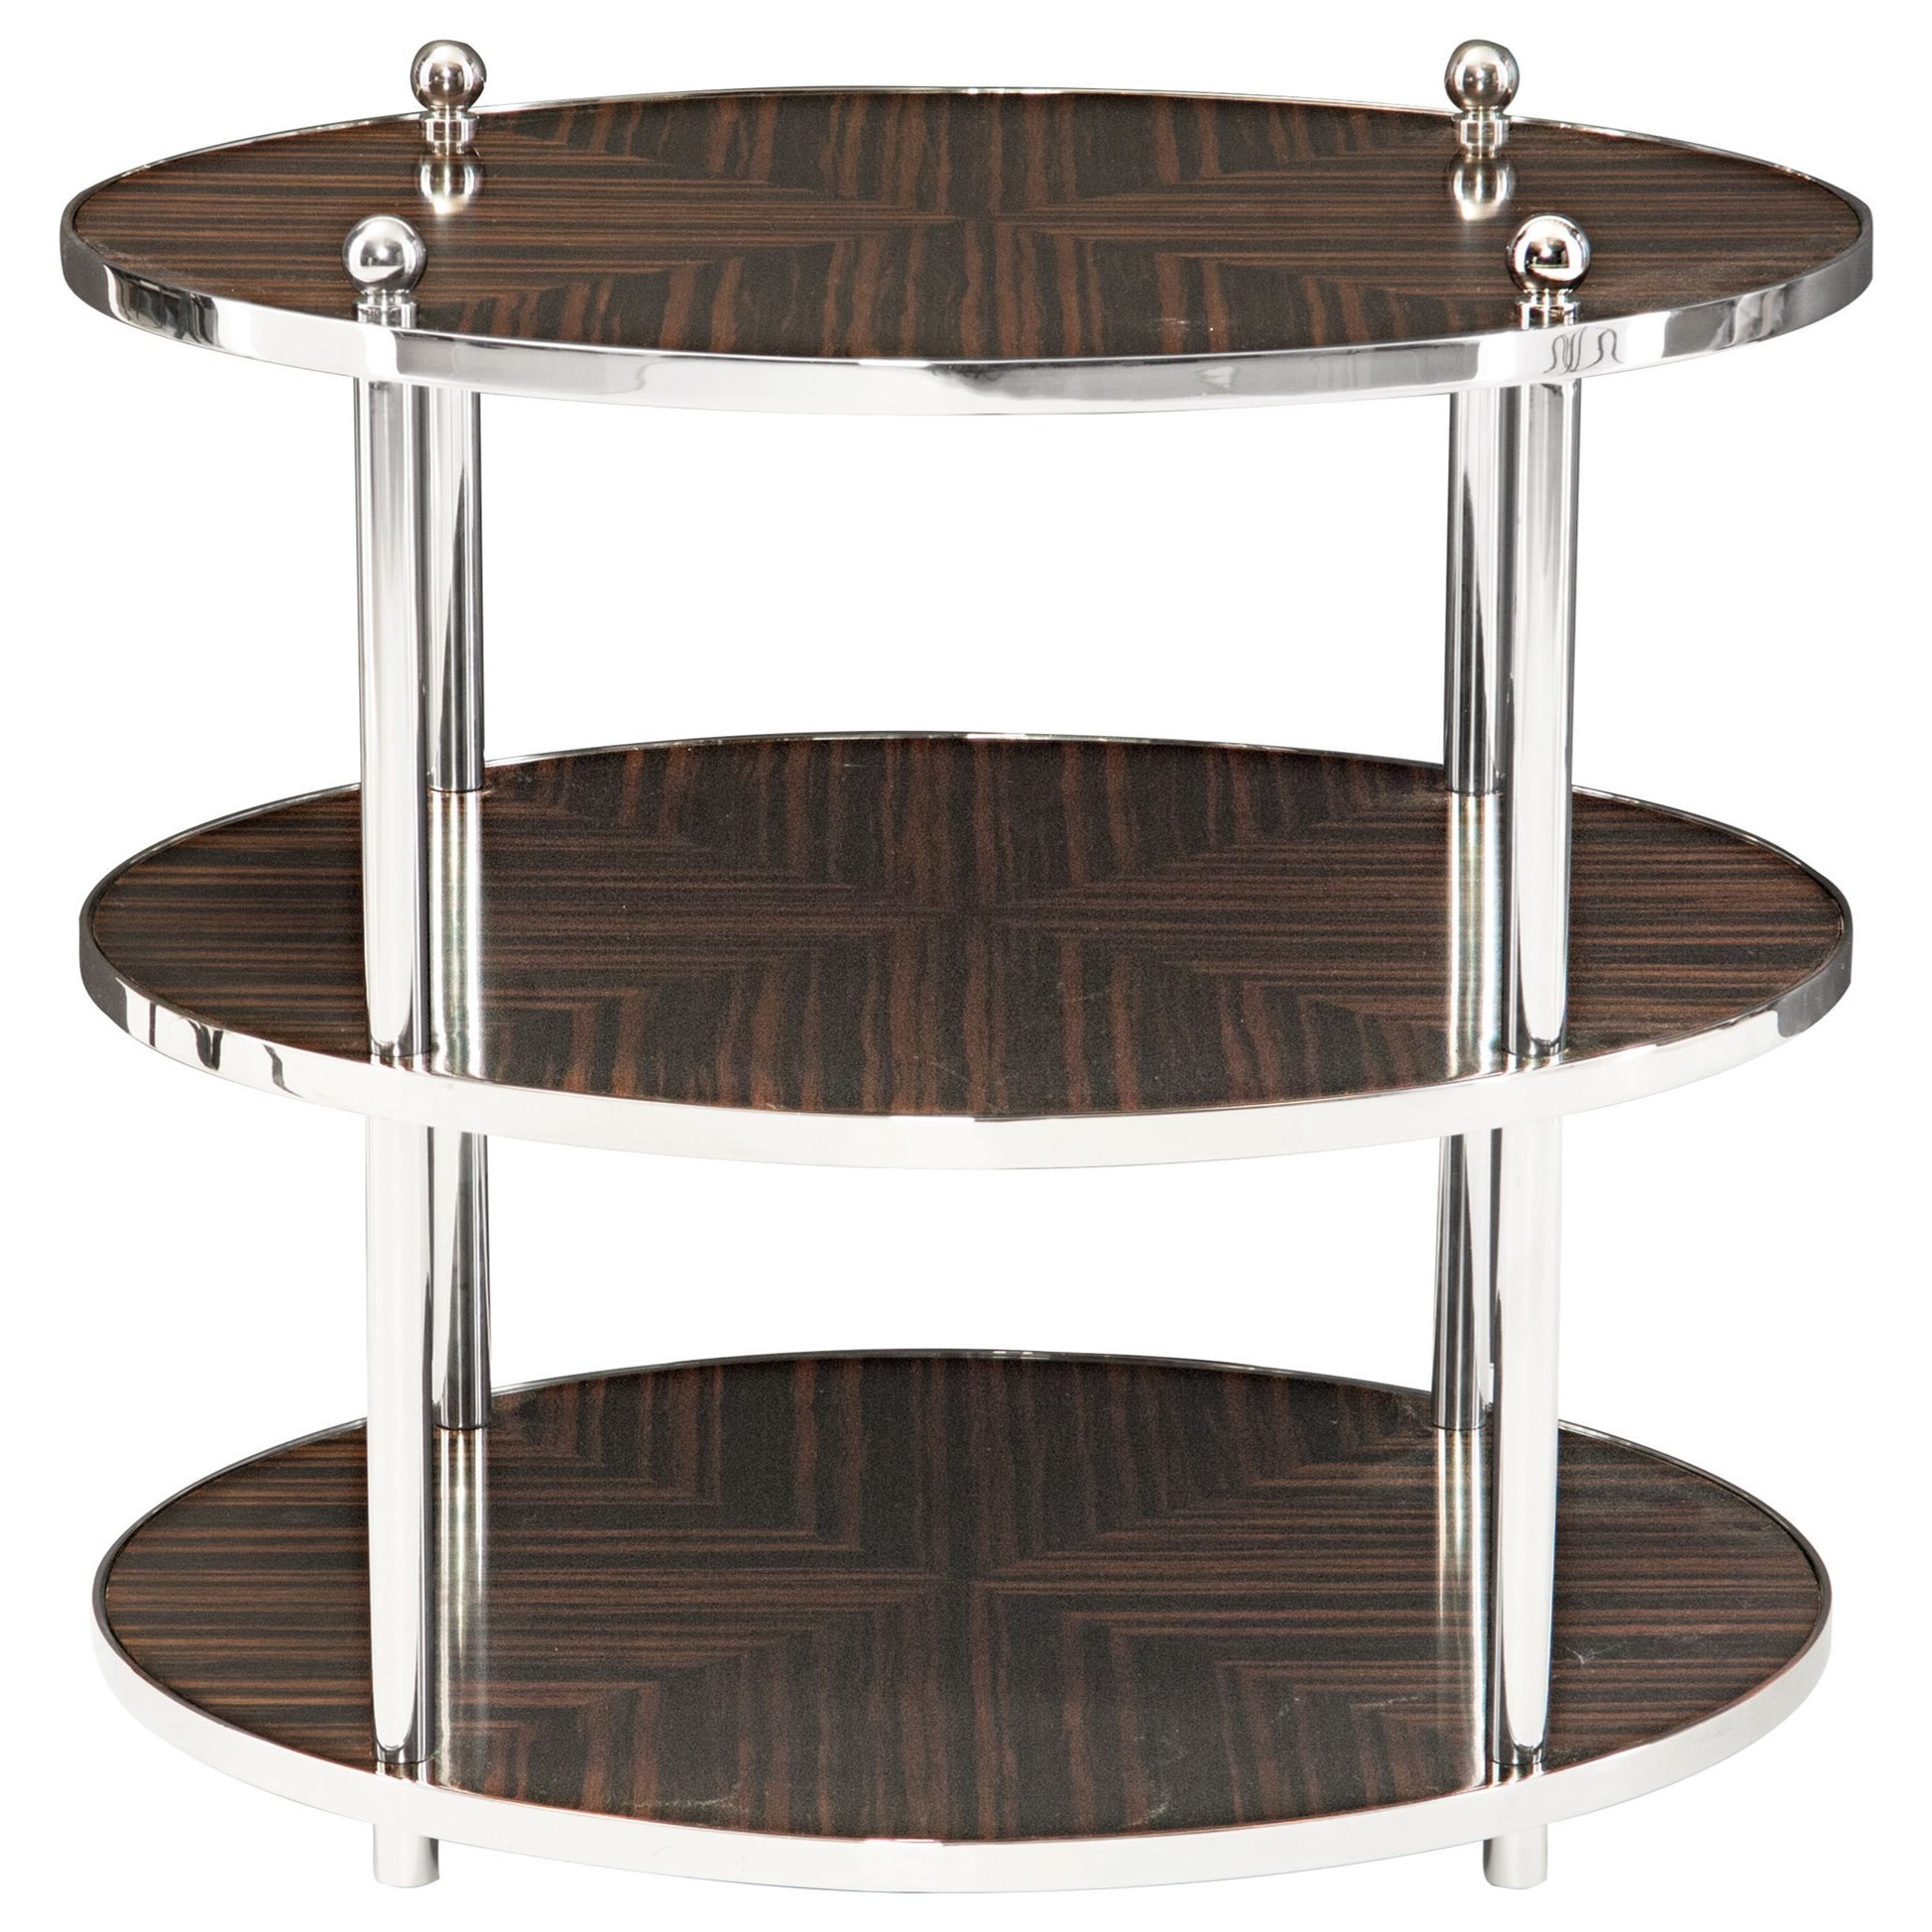 Bernhardt Interiors   Accents Costa Round End Table With 2 Shelves